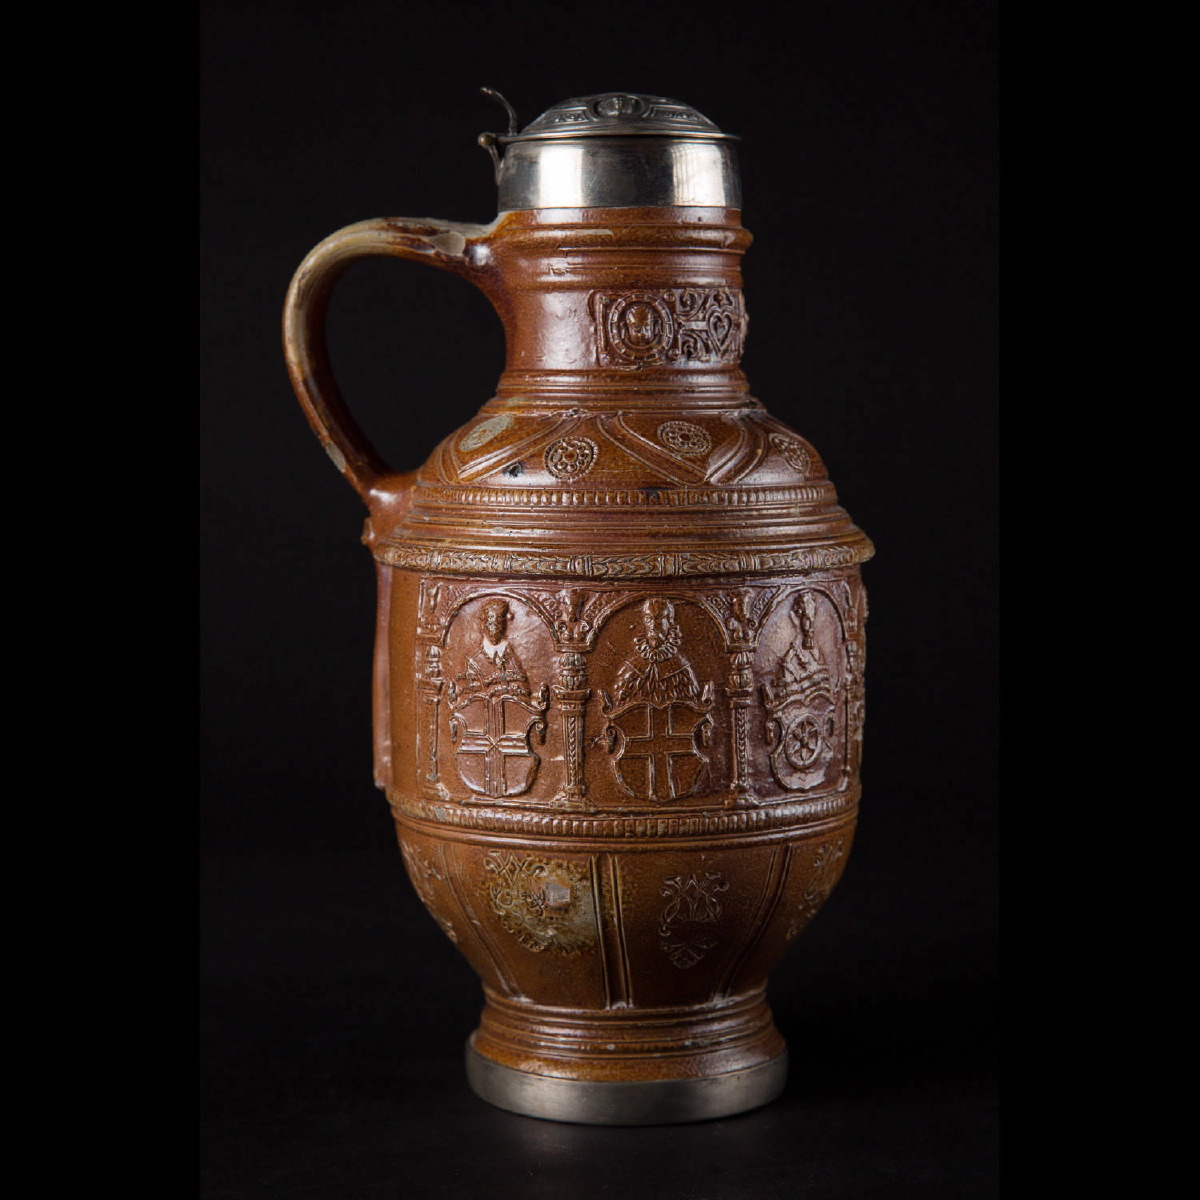 Photo of raeren-pitcher-dated-1602-collectors-objects-galerie-golconda-saint-paul-de-vence-antiquities